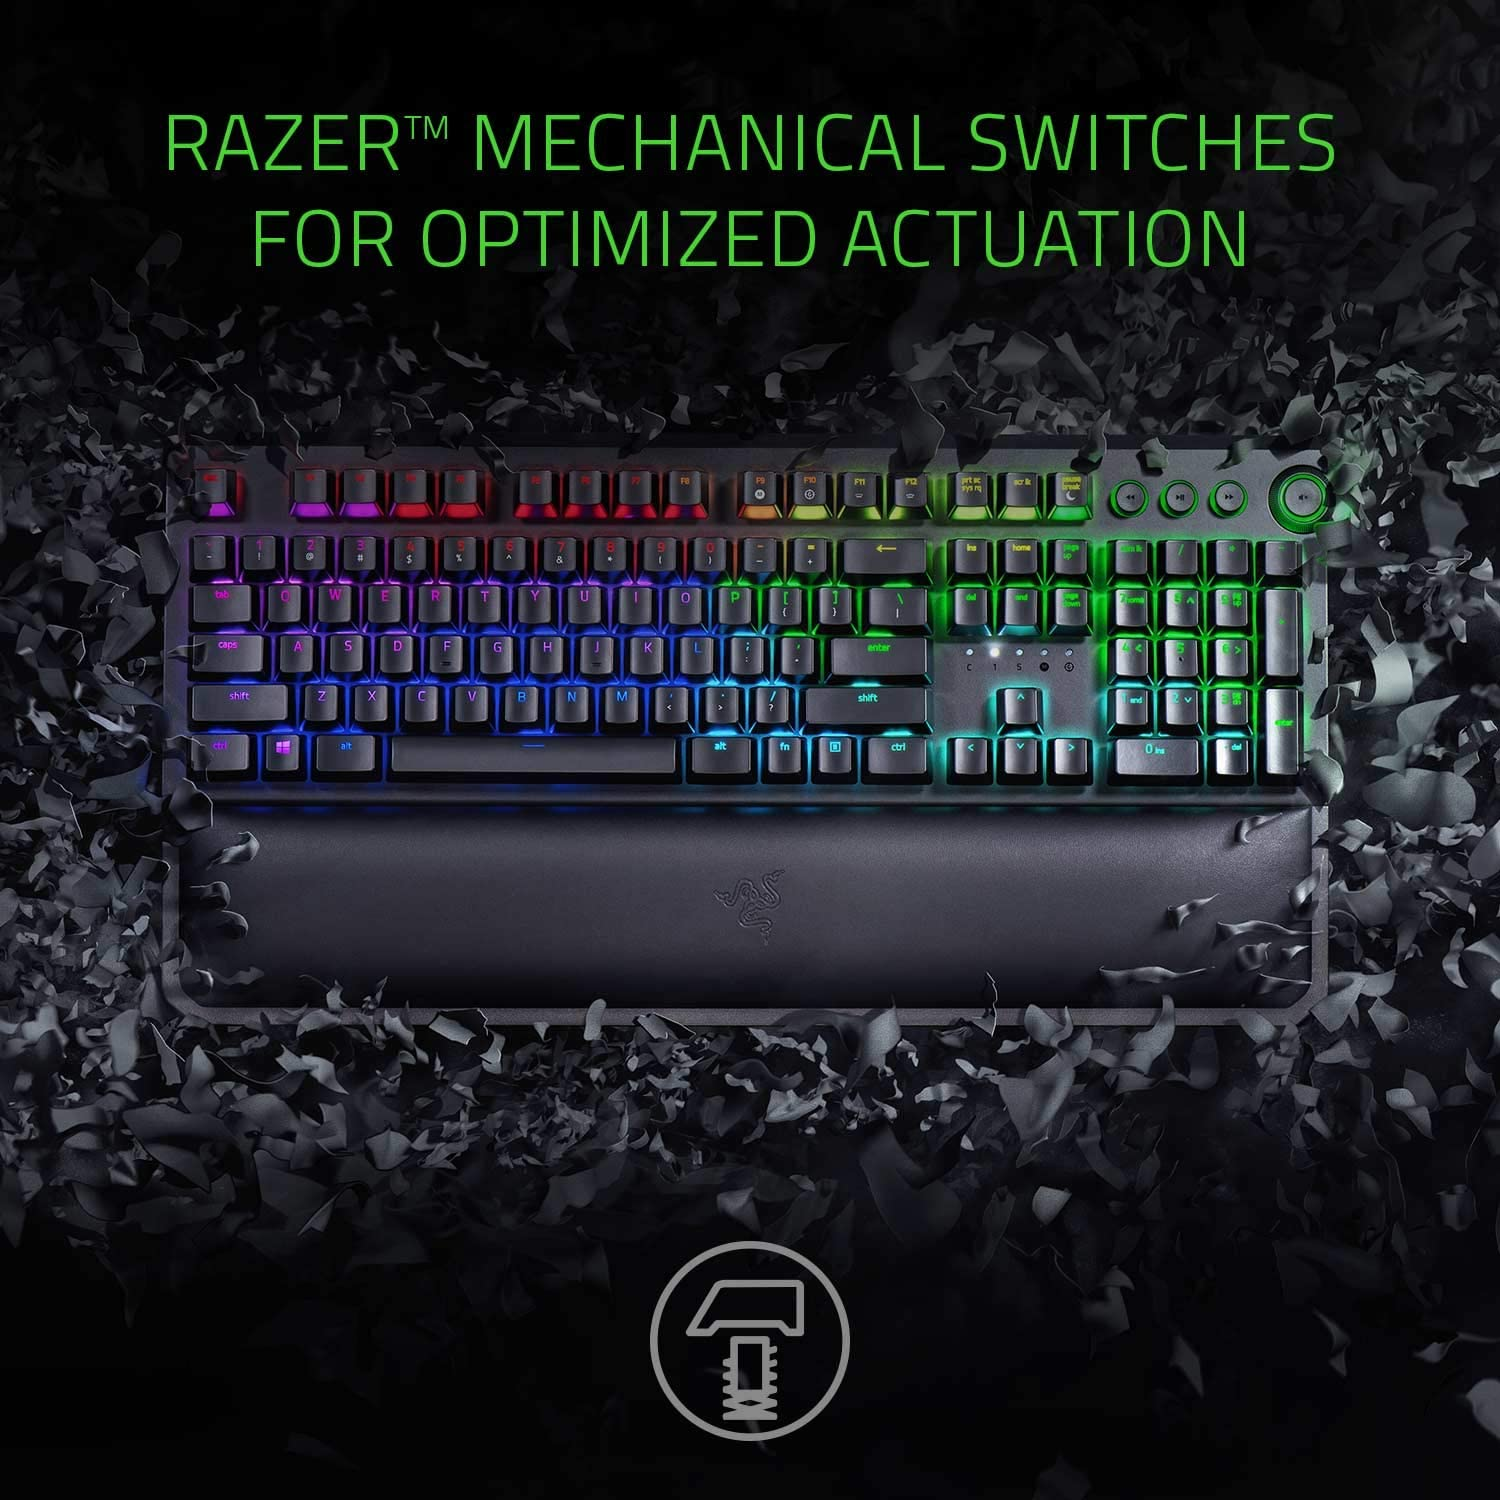 BlackWidow Elite Mechanical Gaming Keyboard: Green Mechanical Switches - Tactile & Clicky - Chroma RGB Lighting - Magnetic Wrist Rest - Dedicated Media Keys & Dial - USB Passthrough